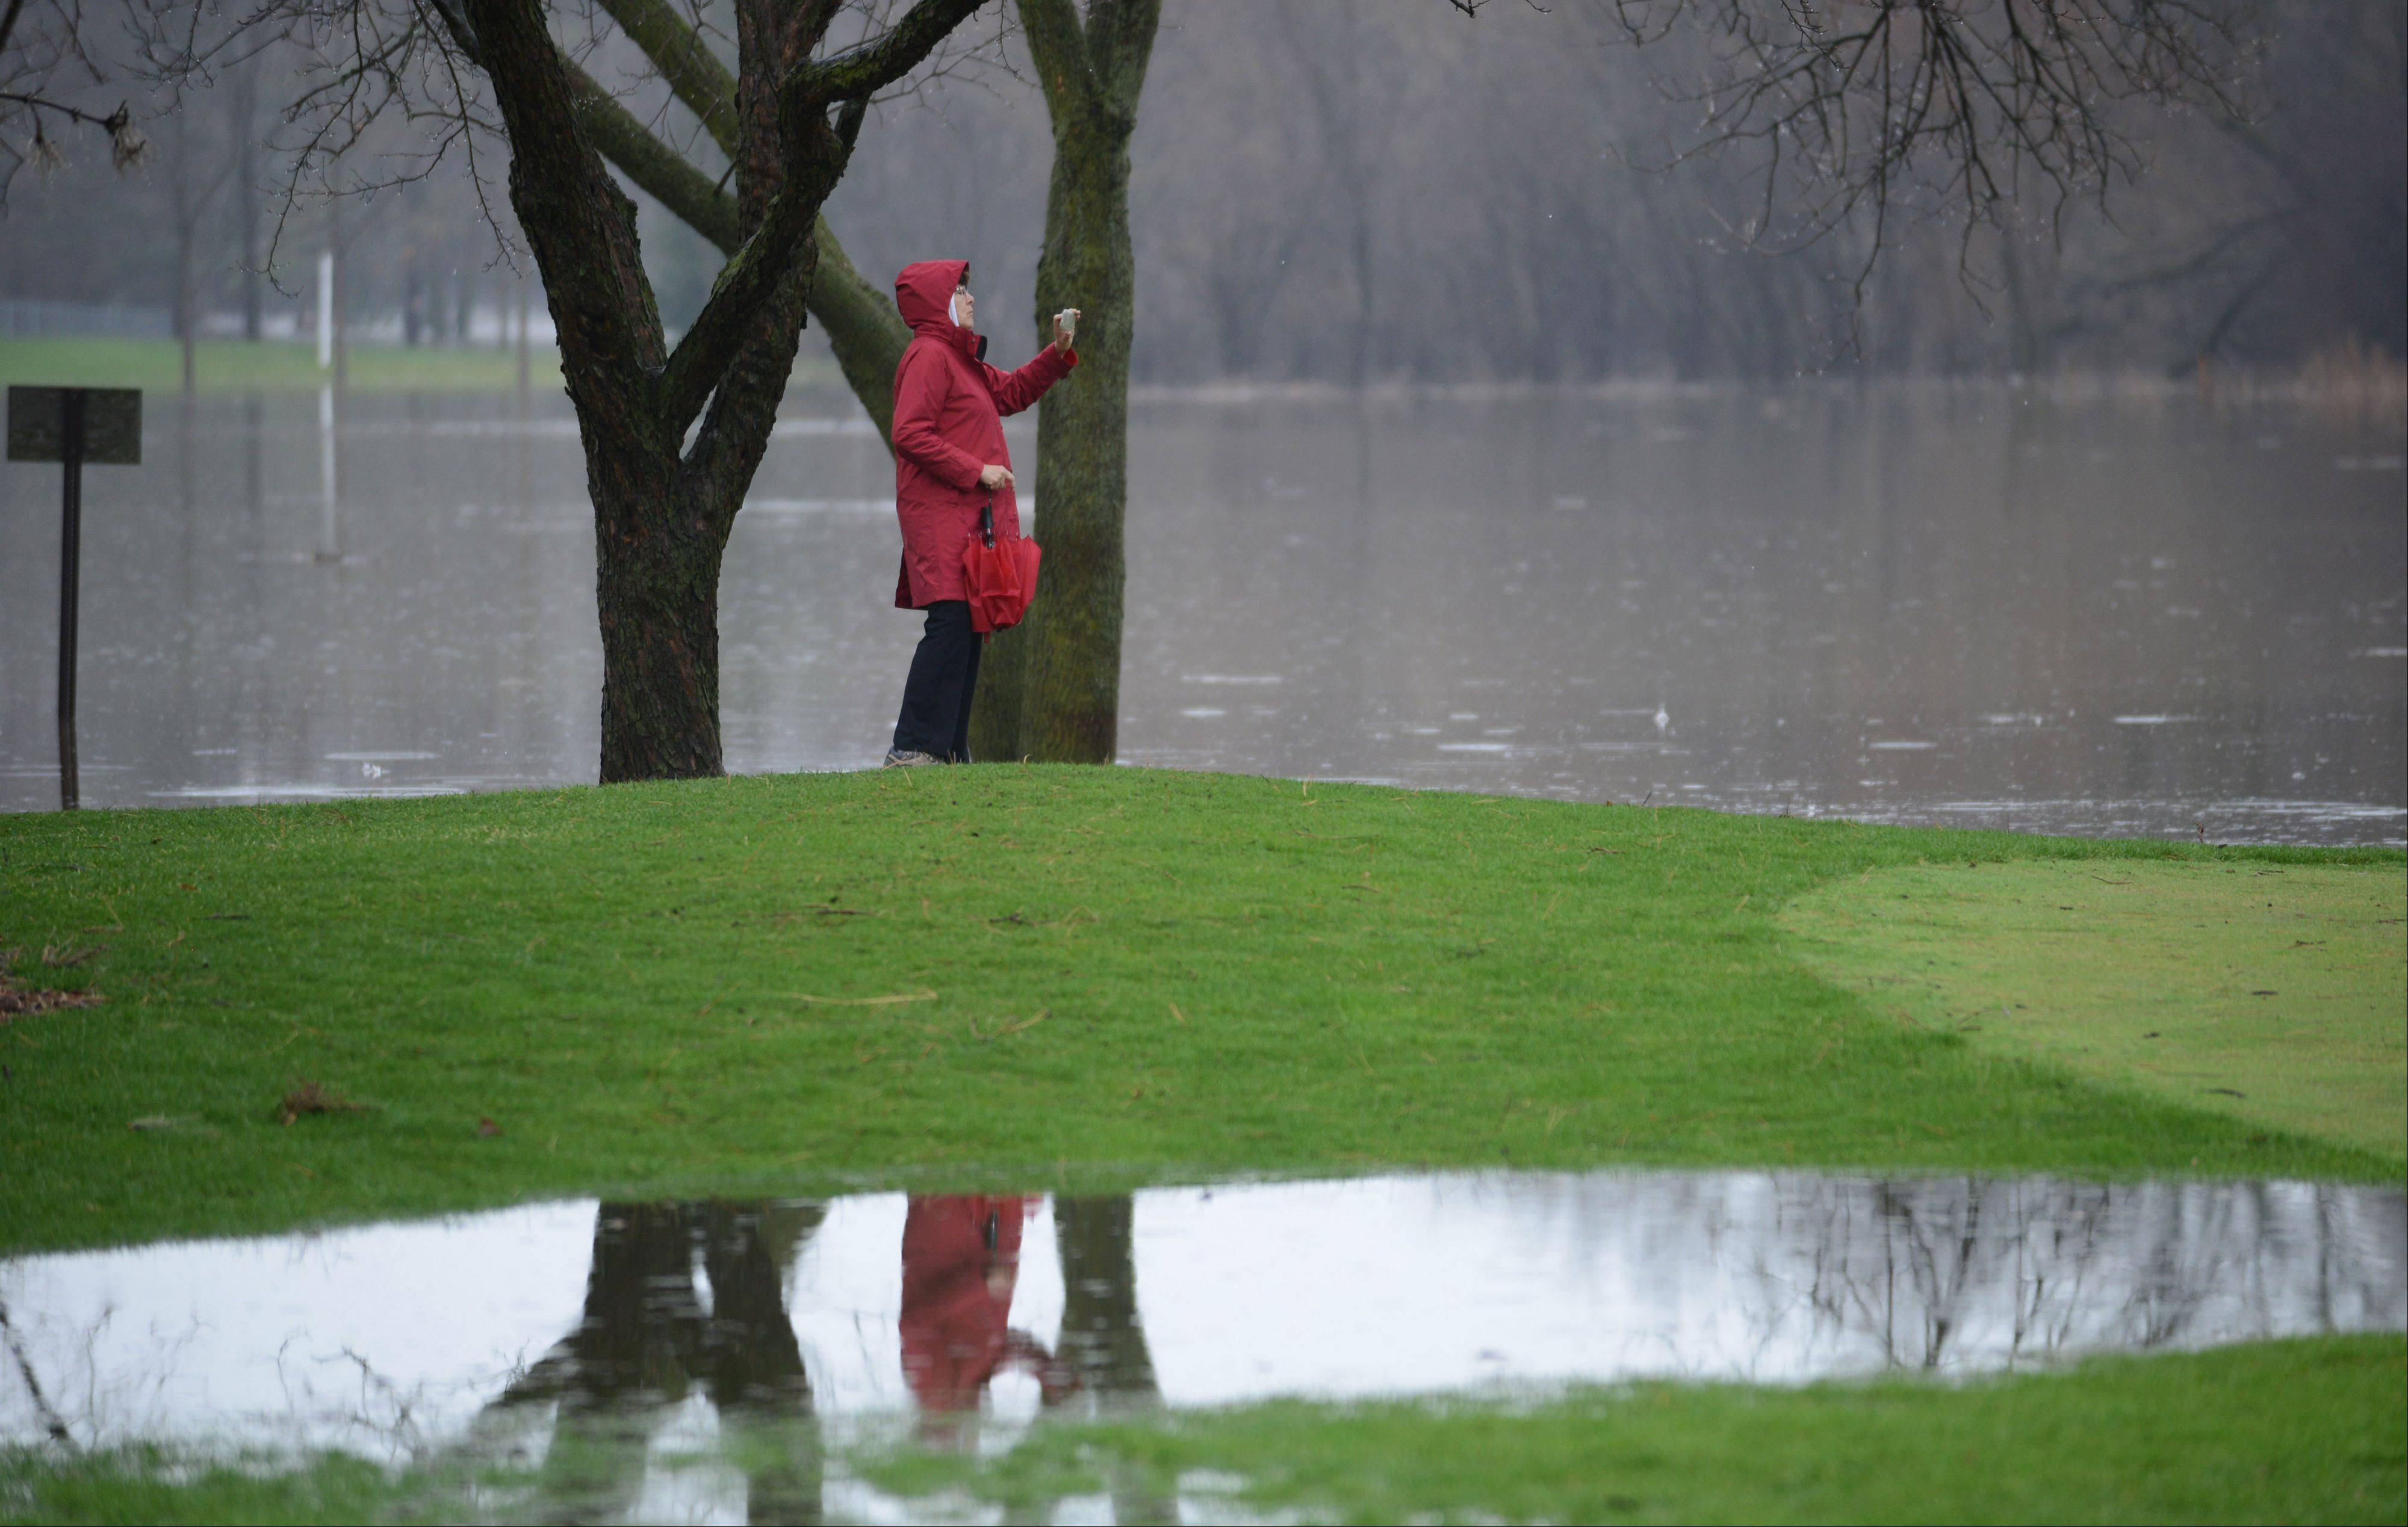 Libertyville resident Nancy Giardina takes photos of the flooded Libertyville Golf Course along Country Club Drive Thursday morning. The Des Plaines River runs alongside the course.